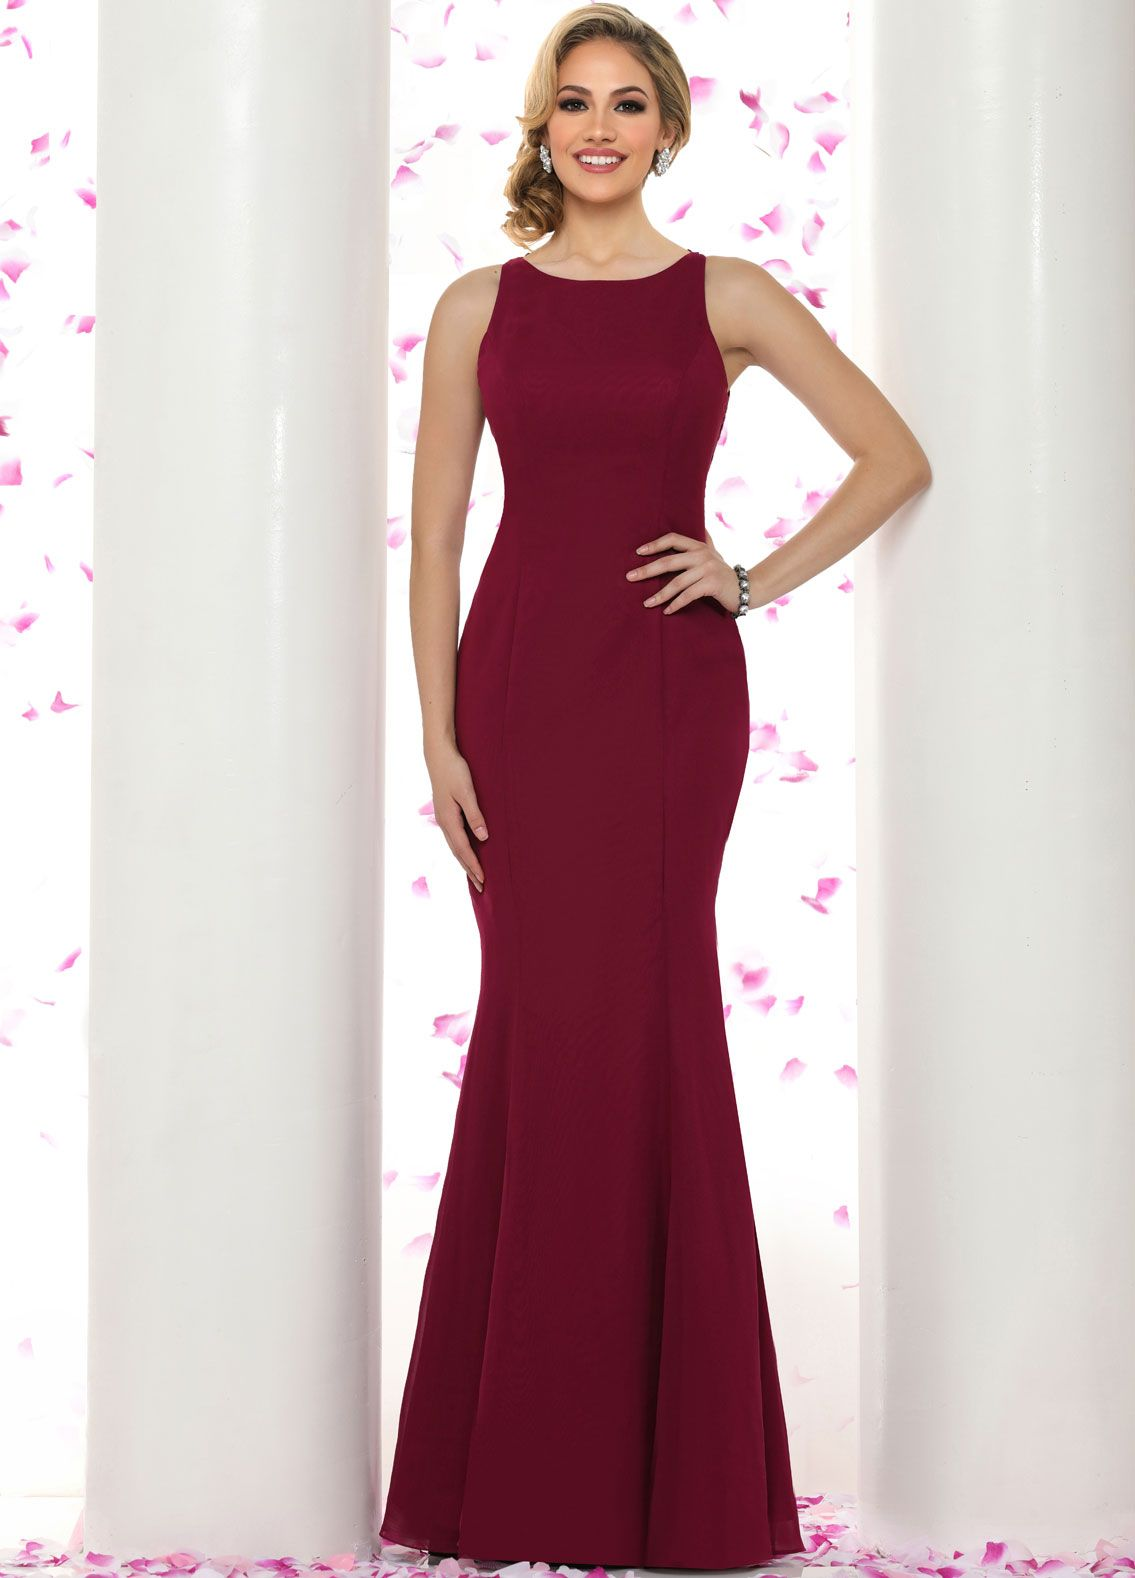 A black tie wedding calls for grand attire for your favorite ladies